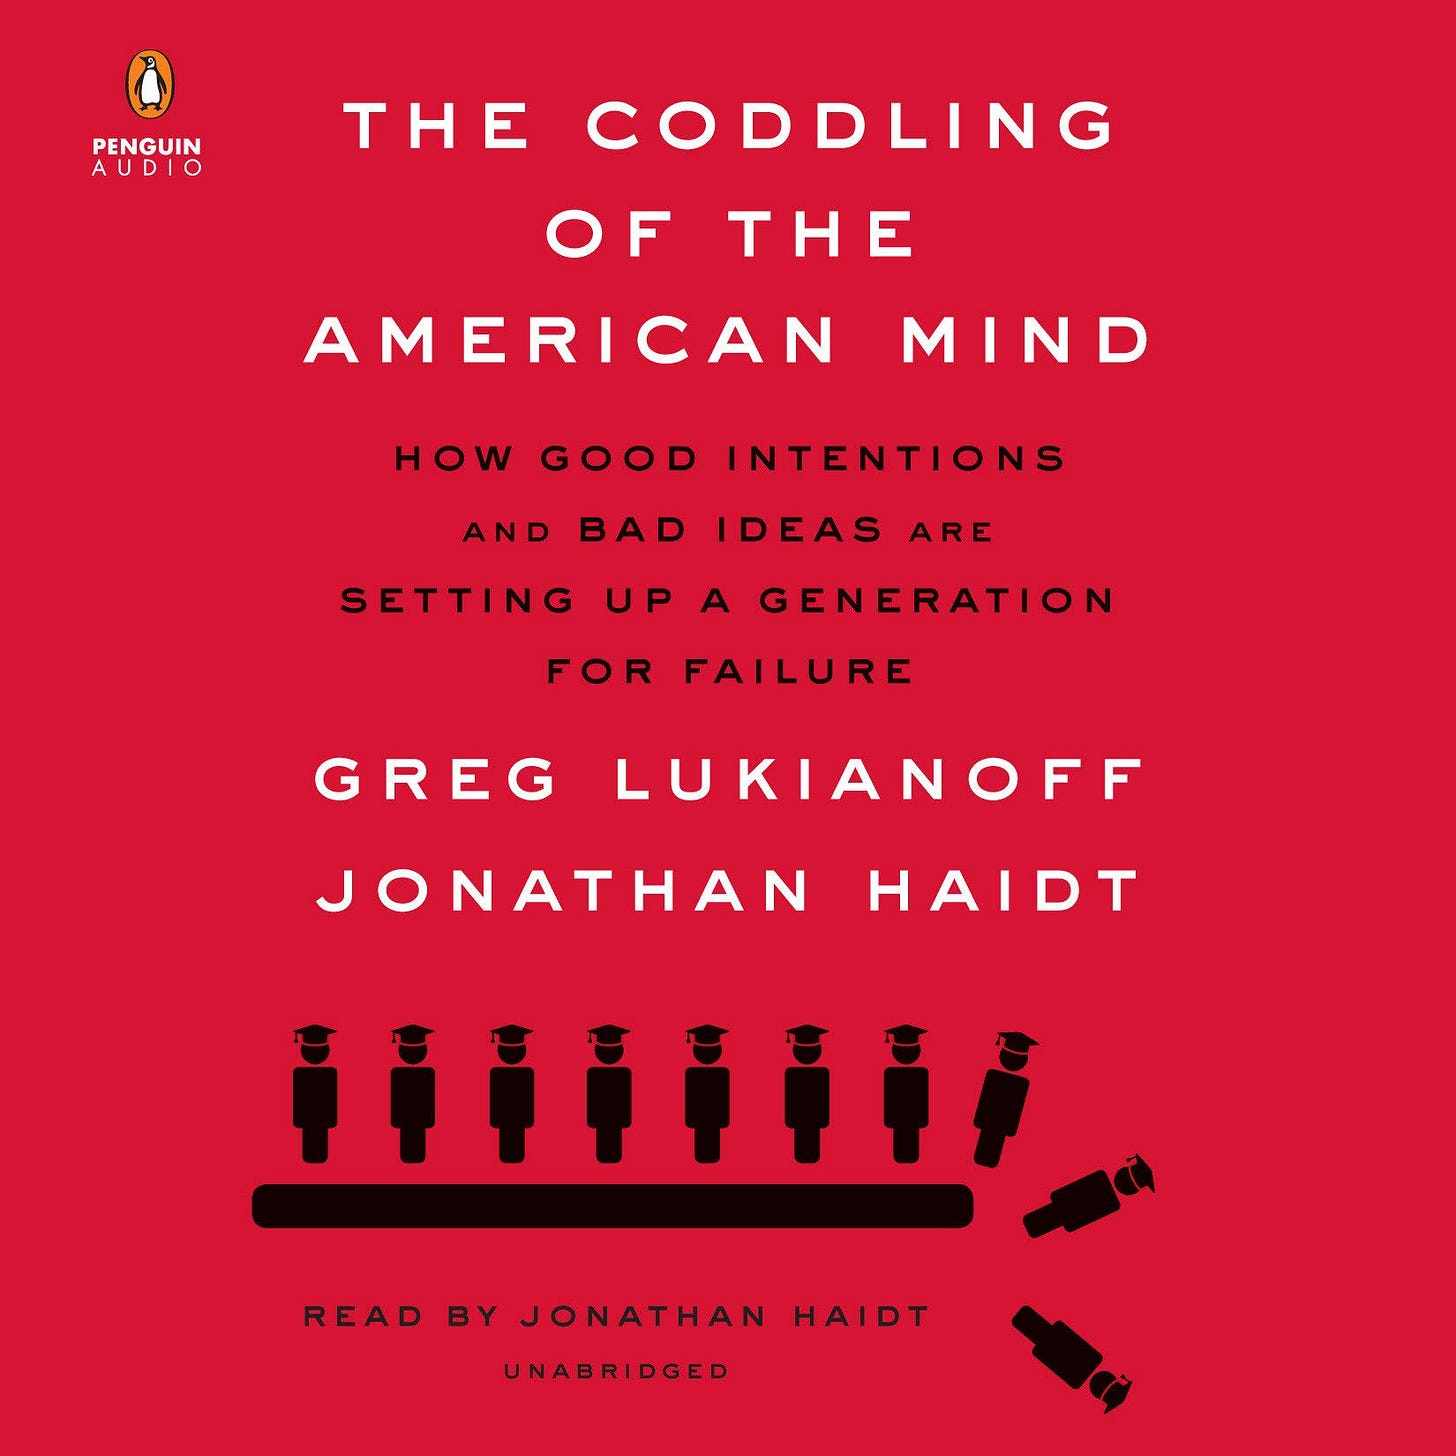 The Coddling of the American Mind by Greg Lukianoff and Jonathan Haidt